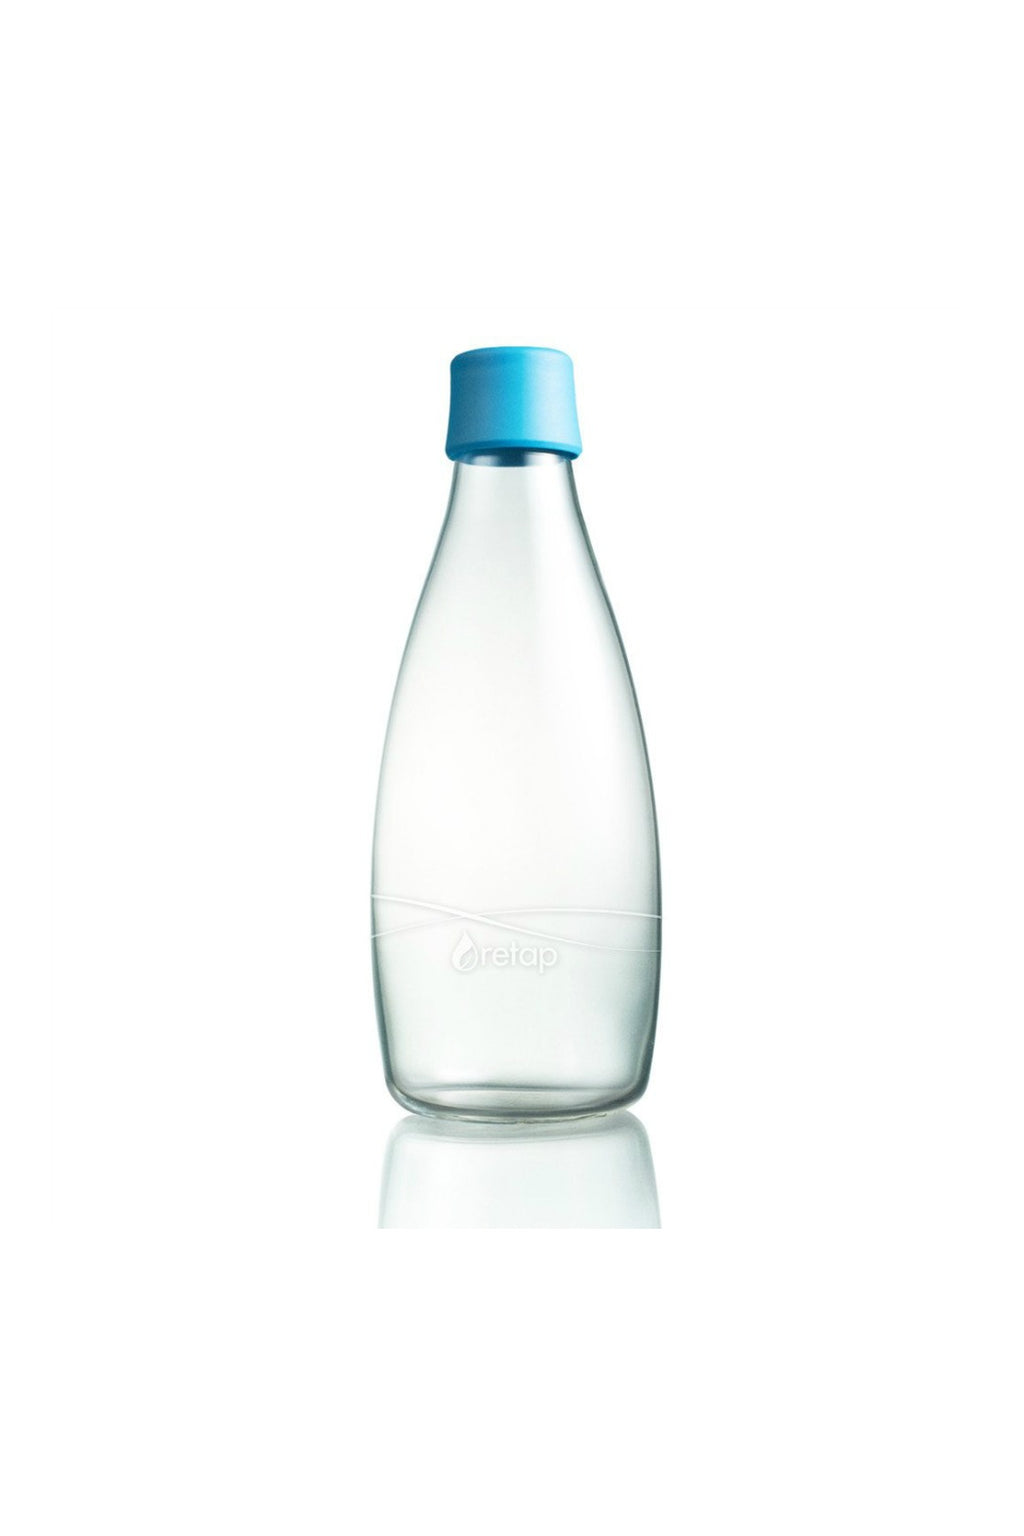 Retap Bottle - 27 oz.